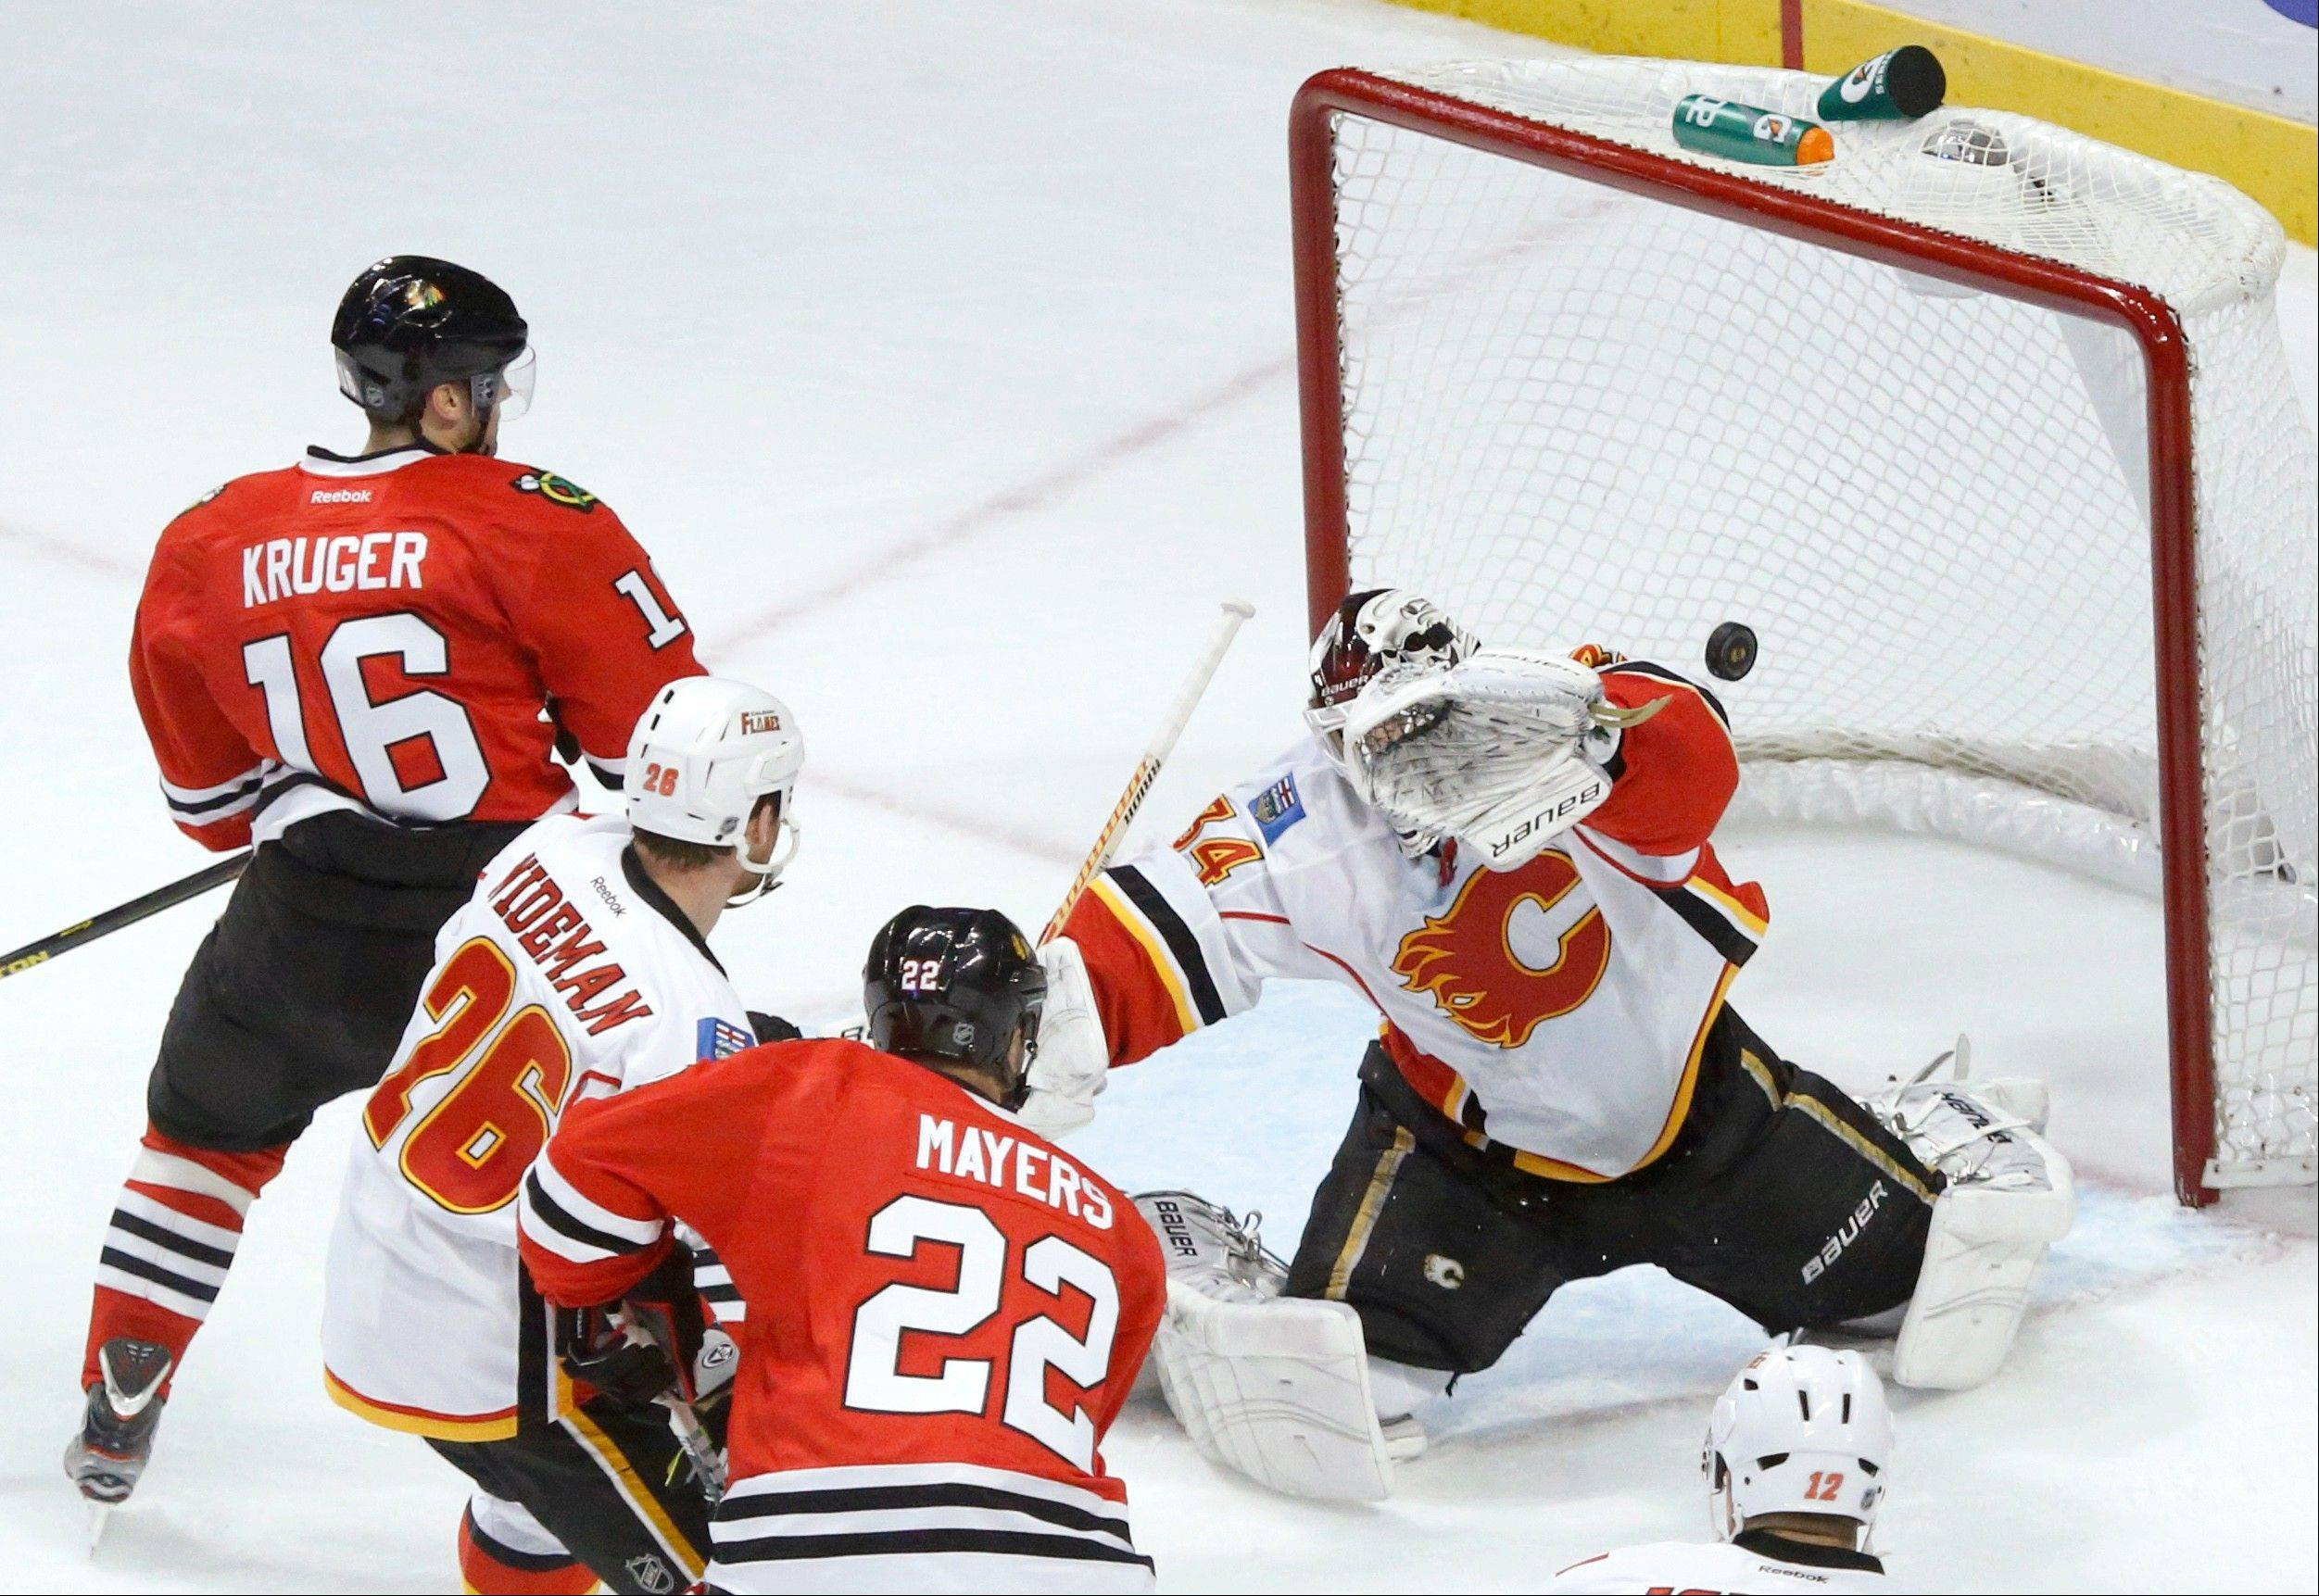 Calgary Flames goalie Miikka Kiprusoff, from Finland, is unable to make a glove save on a goal by Chicago Blackhawks defenseman Brent Seabrook as Marcus Kruger (16), from Sweden, Dennis Wideman, and Jamal Mayers watch during the second period of an NHL hockey game Tuesday, March 26, 2013 in Chicago.